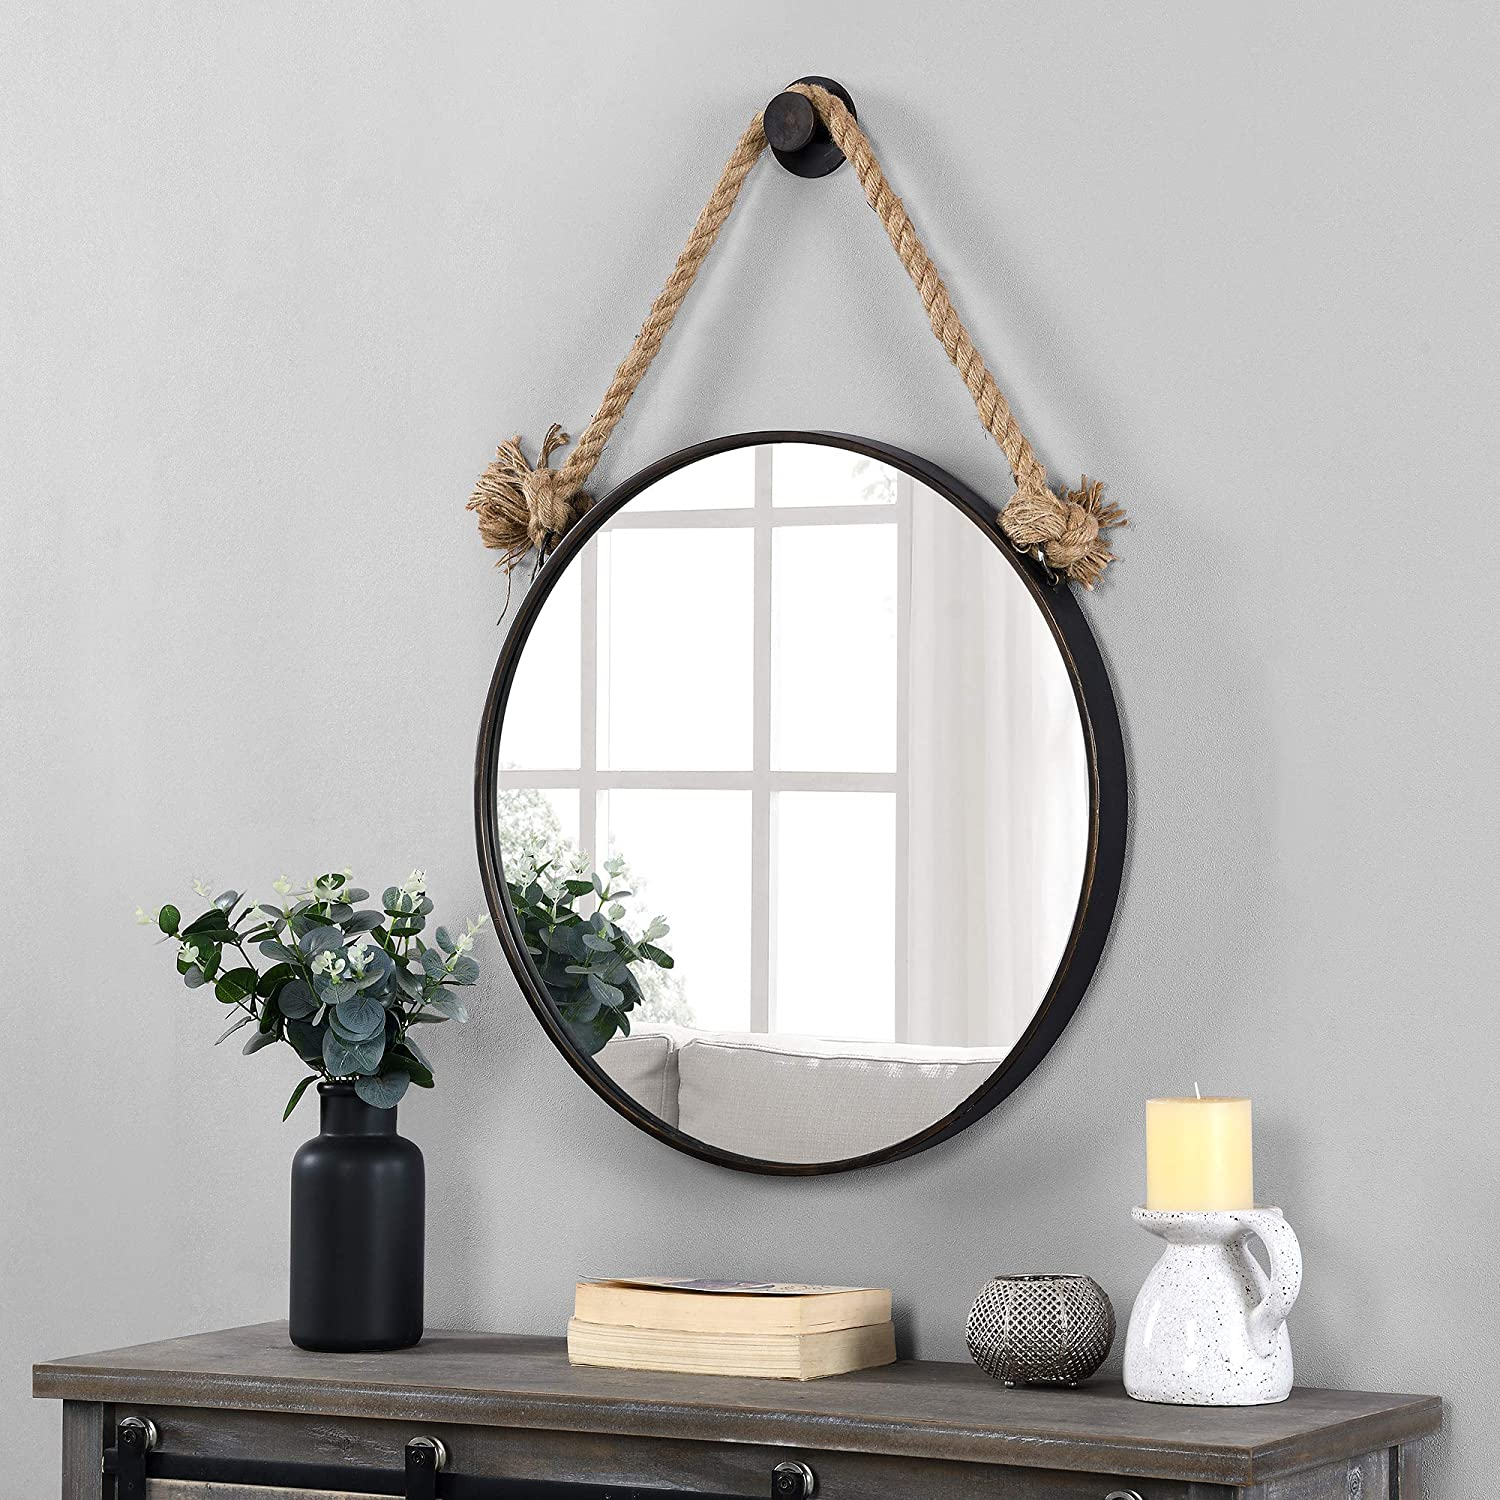 FirsTime & Co. Dockline Round Mirror